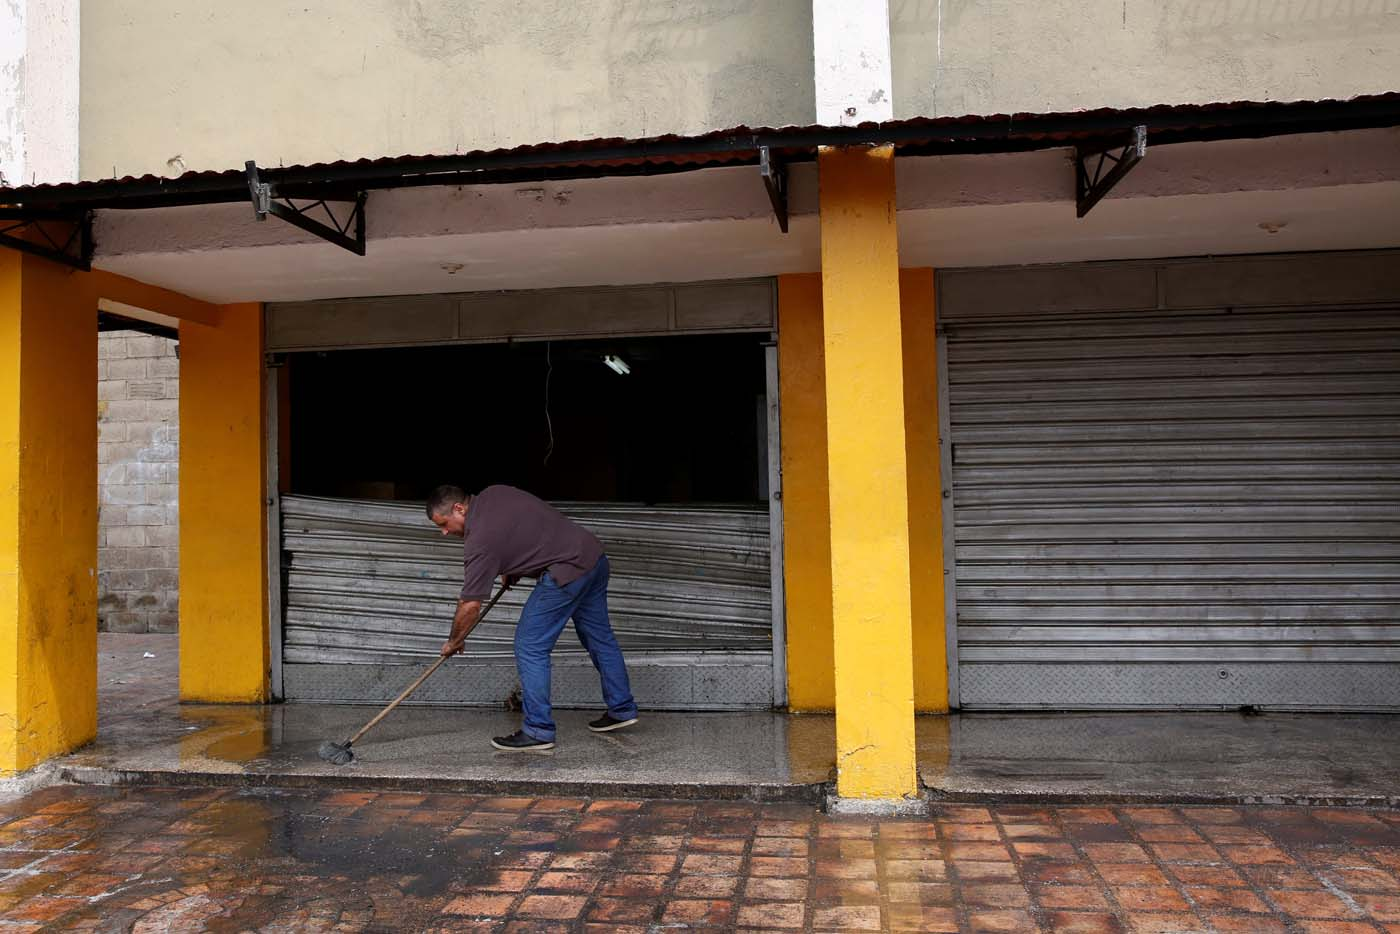 A man cleans the floor next to the broken door of a supermarket which was looted in Caracas, Venezuela April 21, 2017. REUTERS/Carlos Garcia Rawlins